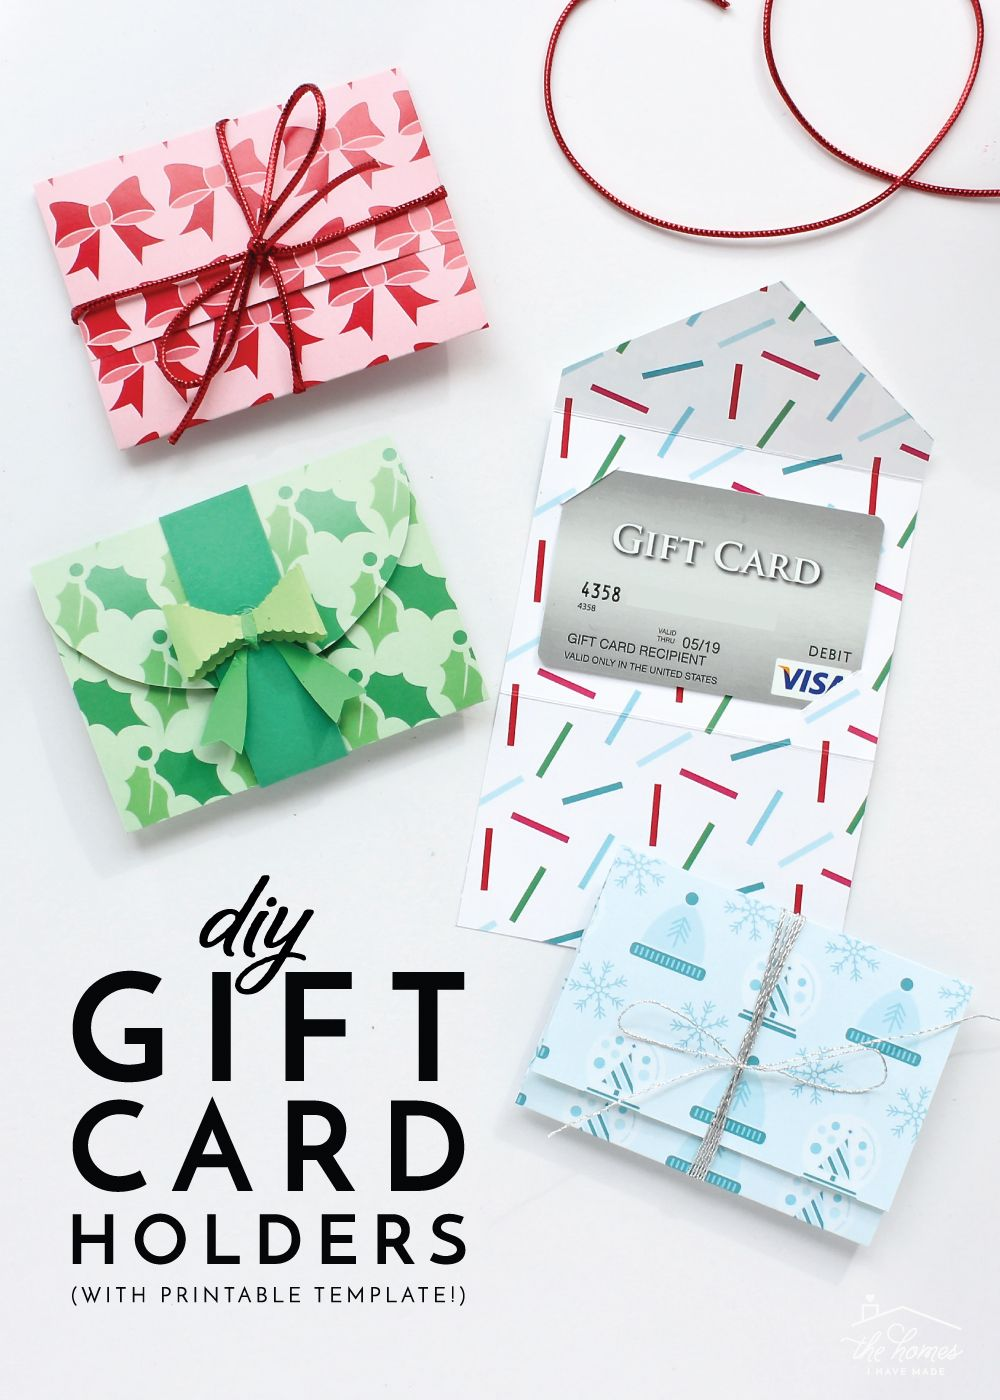 Diy gift card holders with printable template